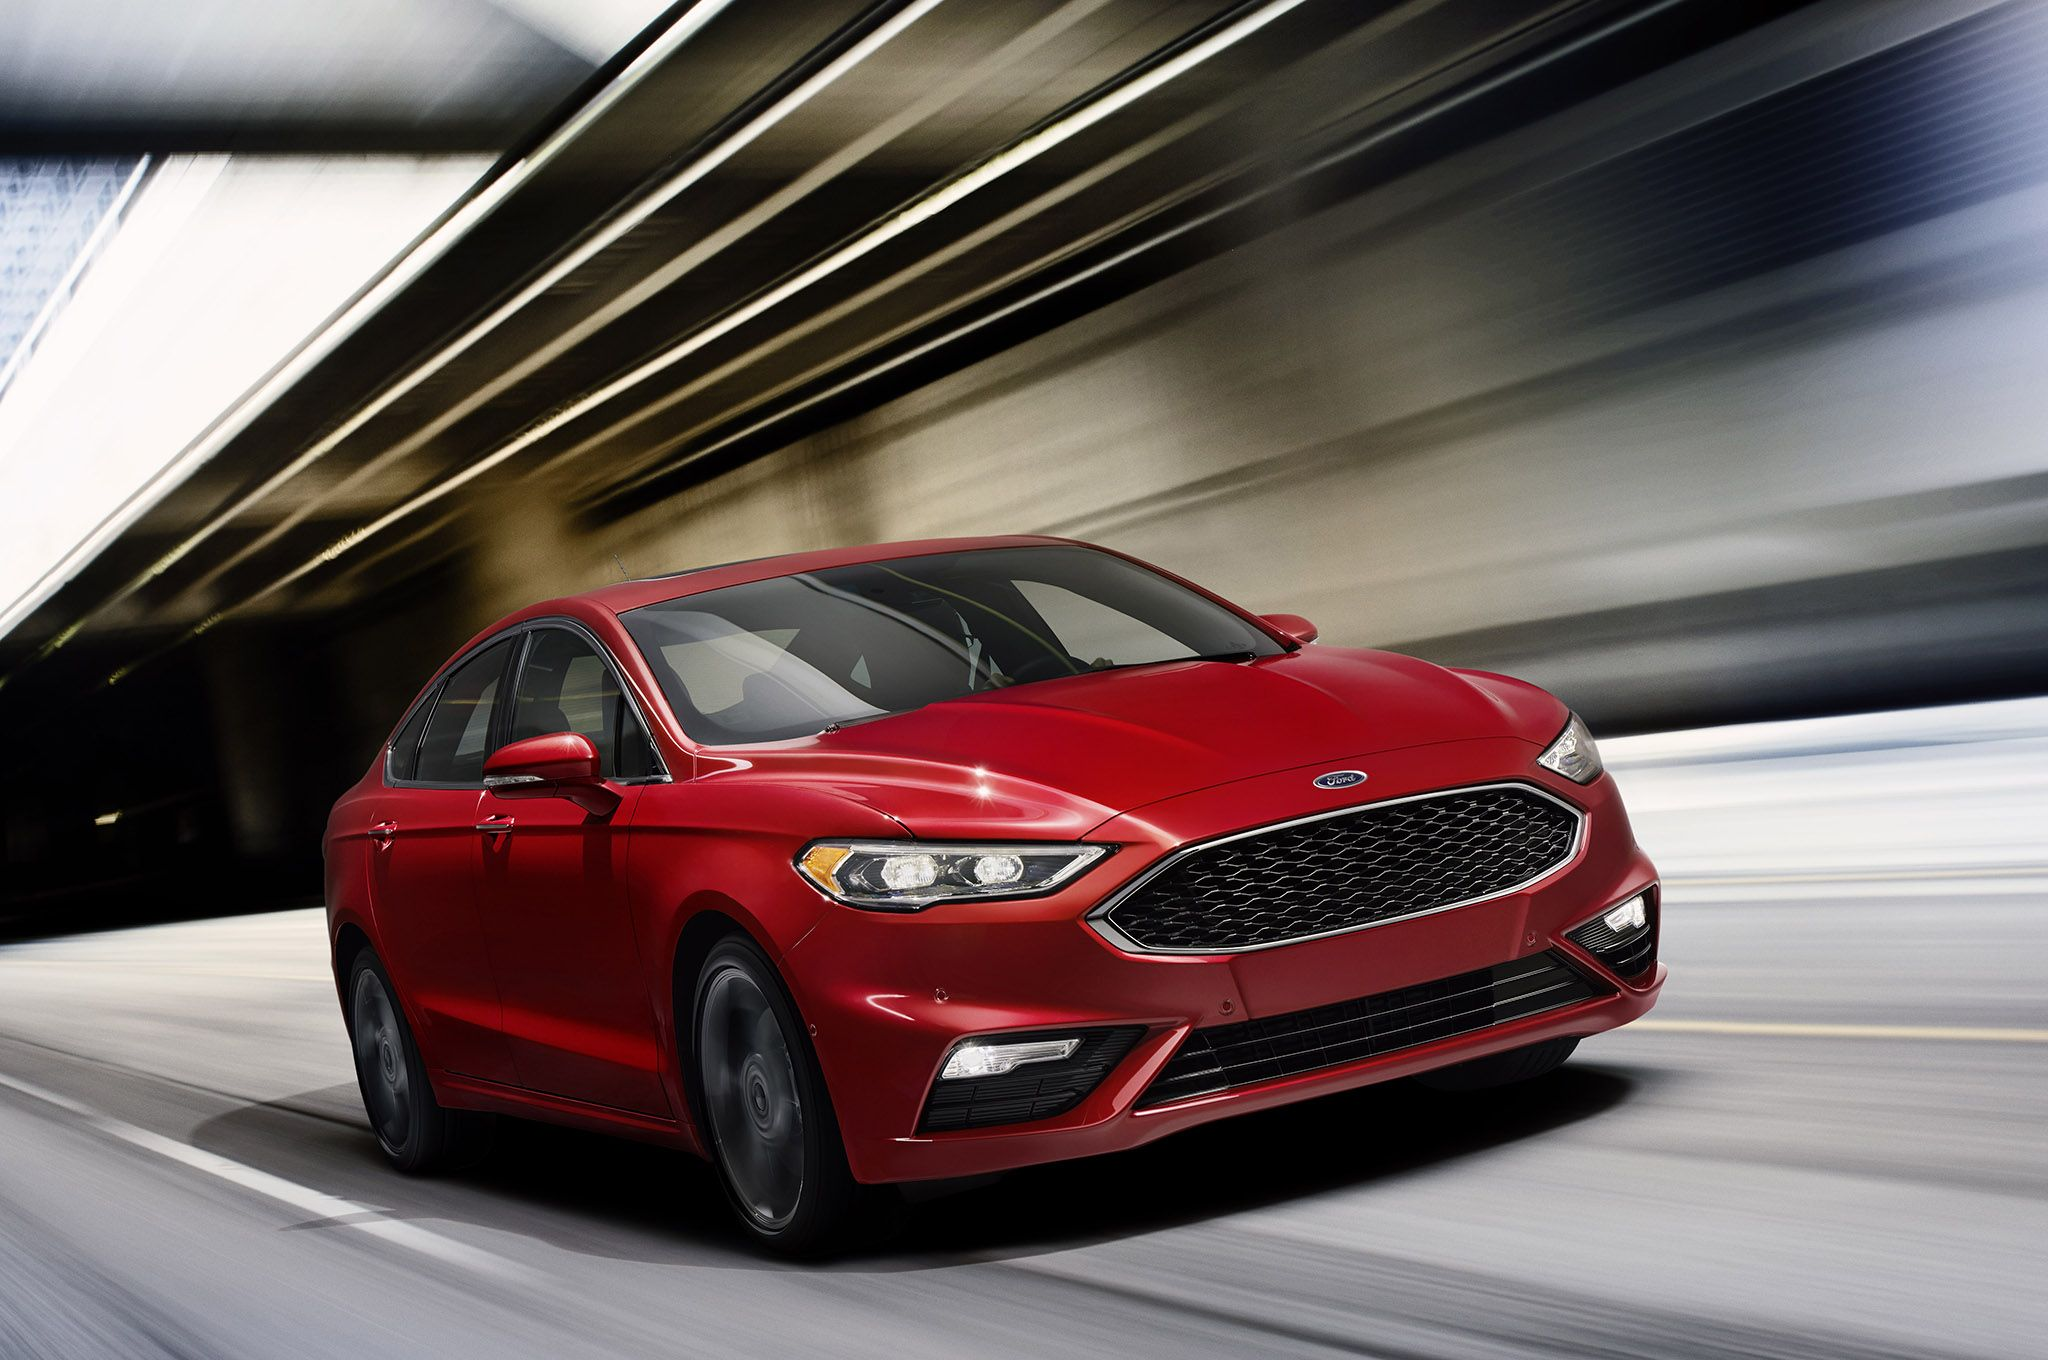 The 2017 Ford Fusion reminds us again that the Fusion